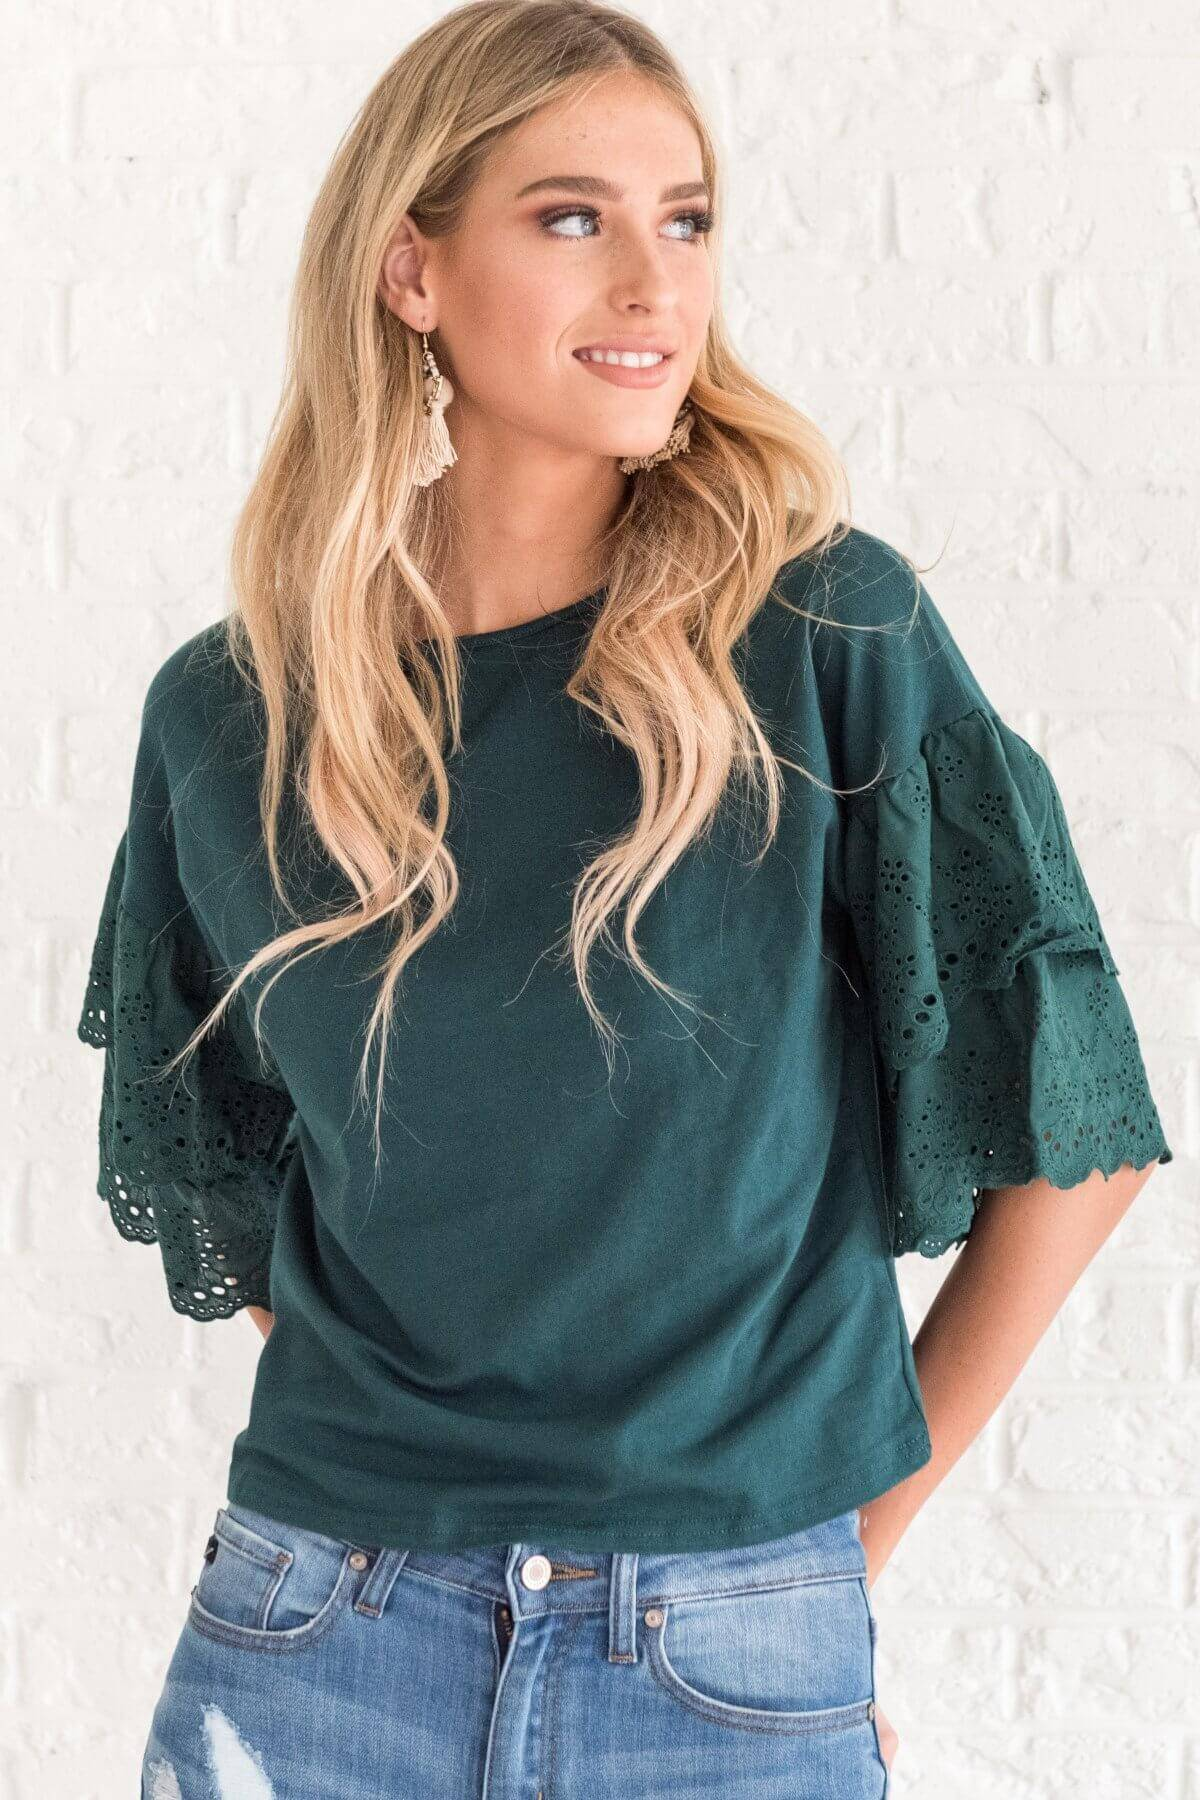 Teal Green Cute Ruffle Sleeve Crochet Half Tops Business Casual for Women